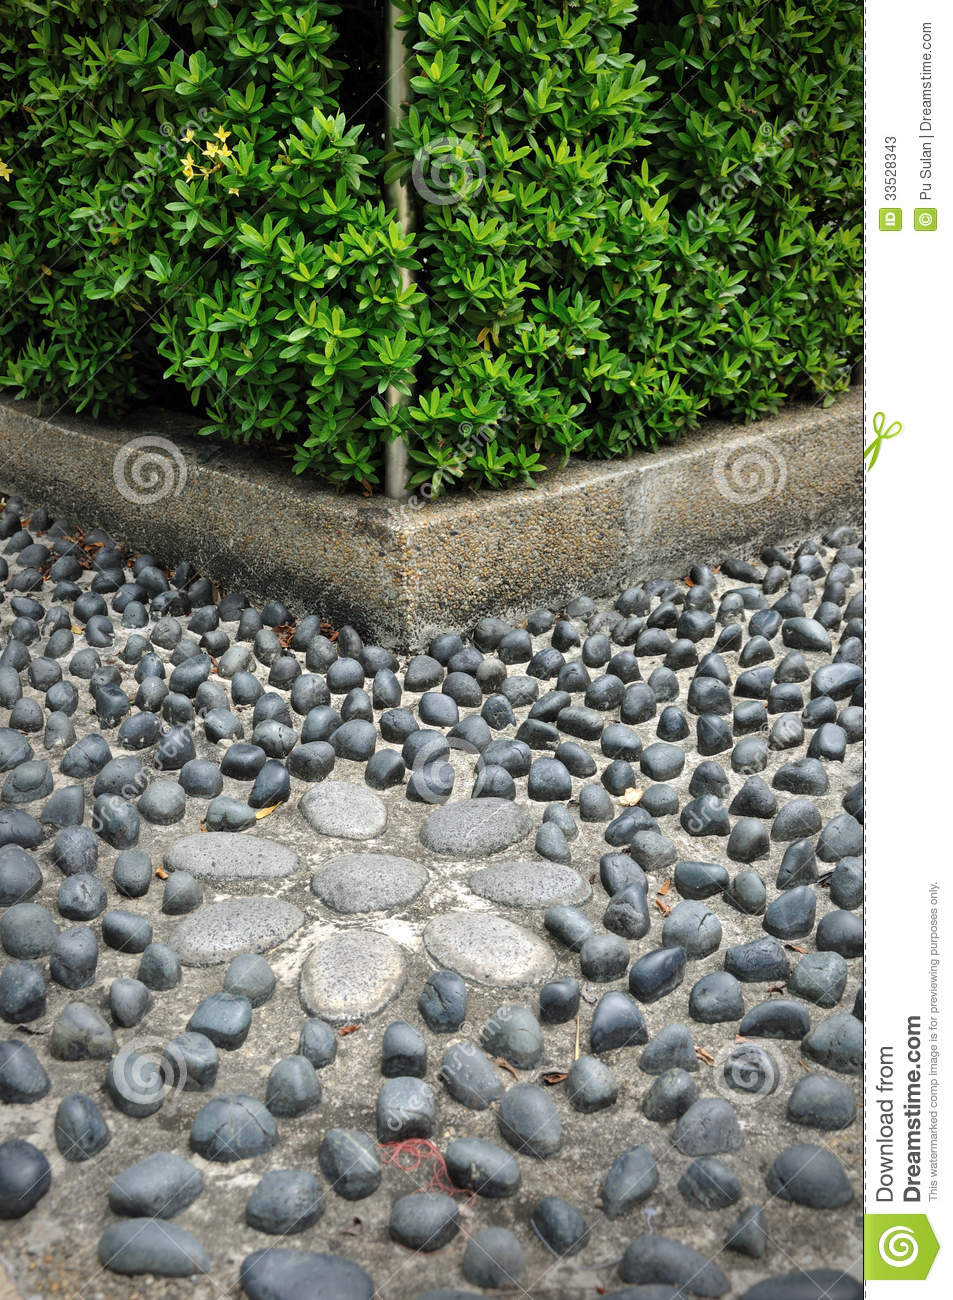 Vorgarten Nordseite Gestalten Pebble Stone Path Stock Image. Image Of Destination